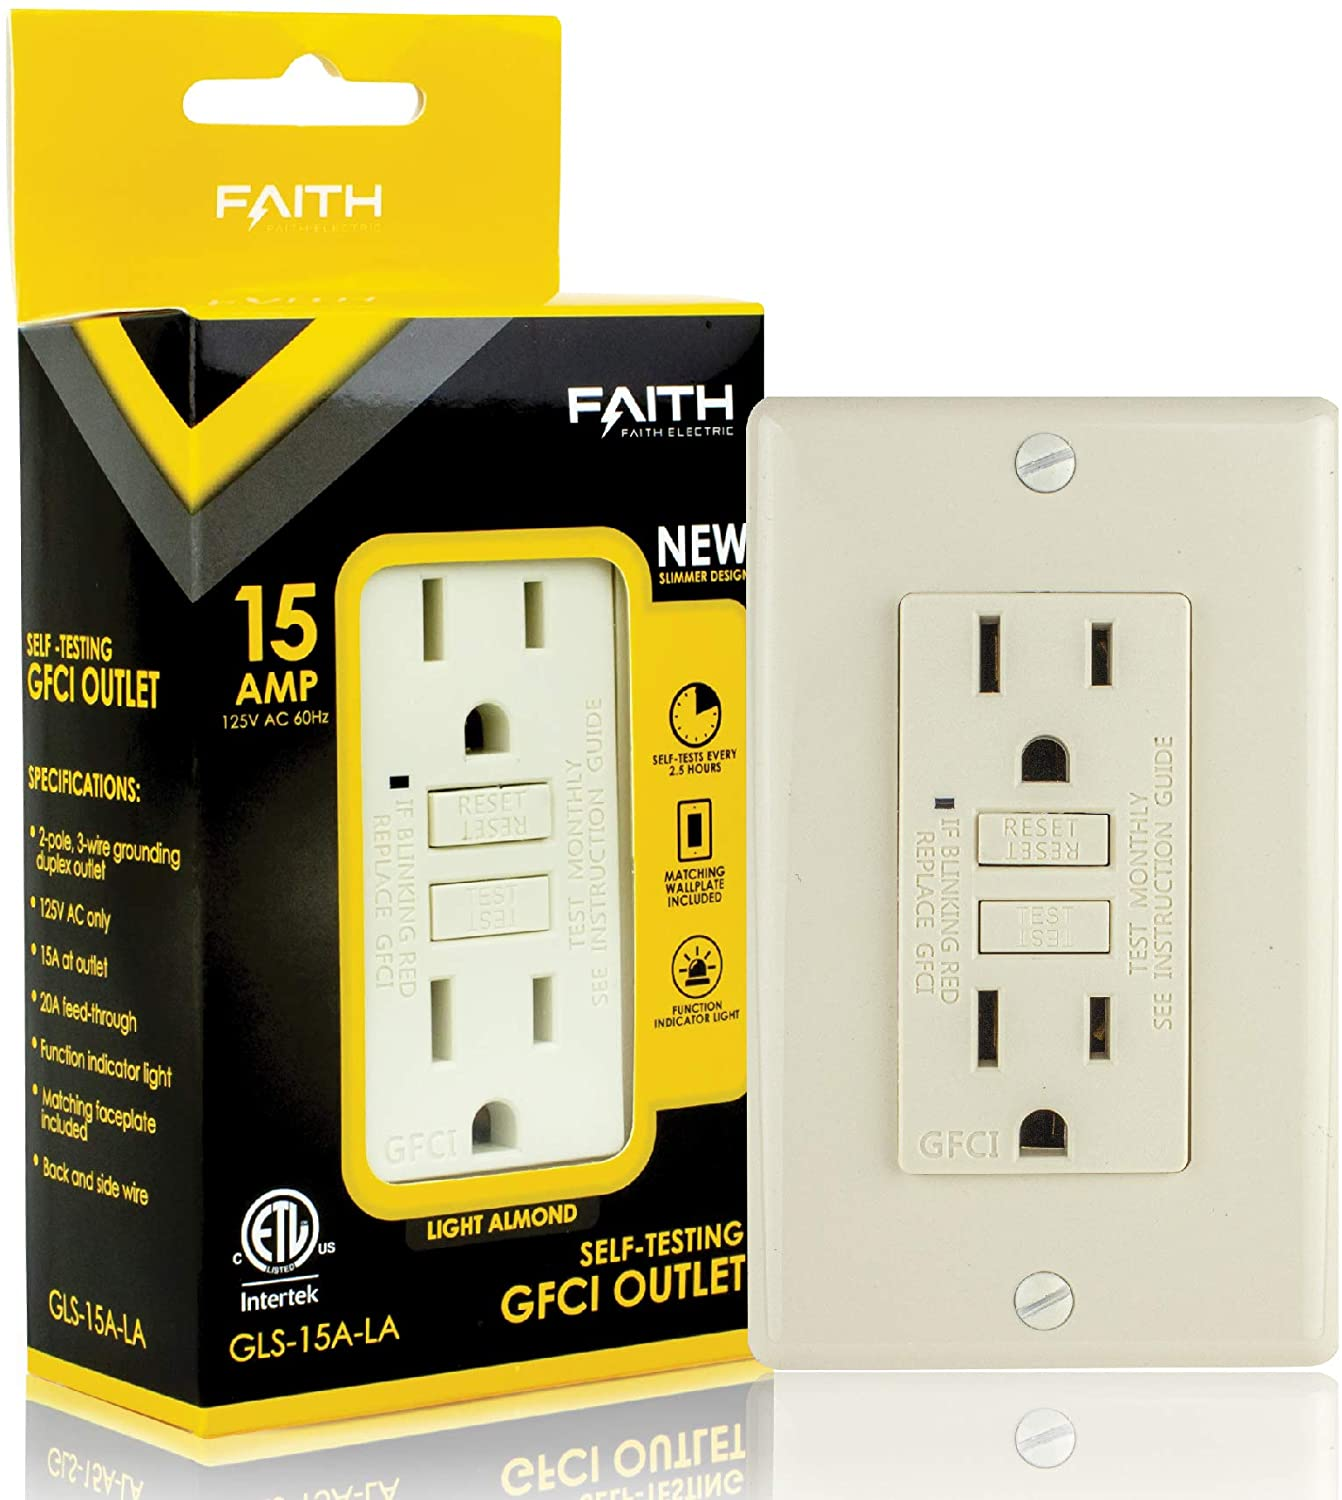 Faith 15A GFCI Outlet Slim, Non-Tamper-Resistant GFI Duplex Receptacles with LED Indicator, Self-Test Ground Fault Circuit Interrupter with Wall Plate, ETL Listed, Light Almond